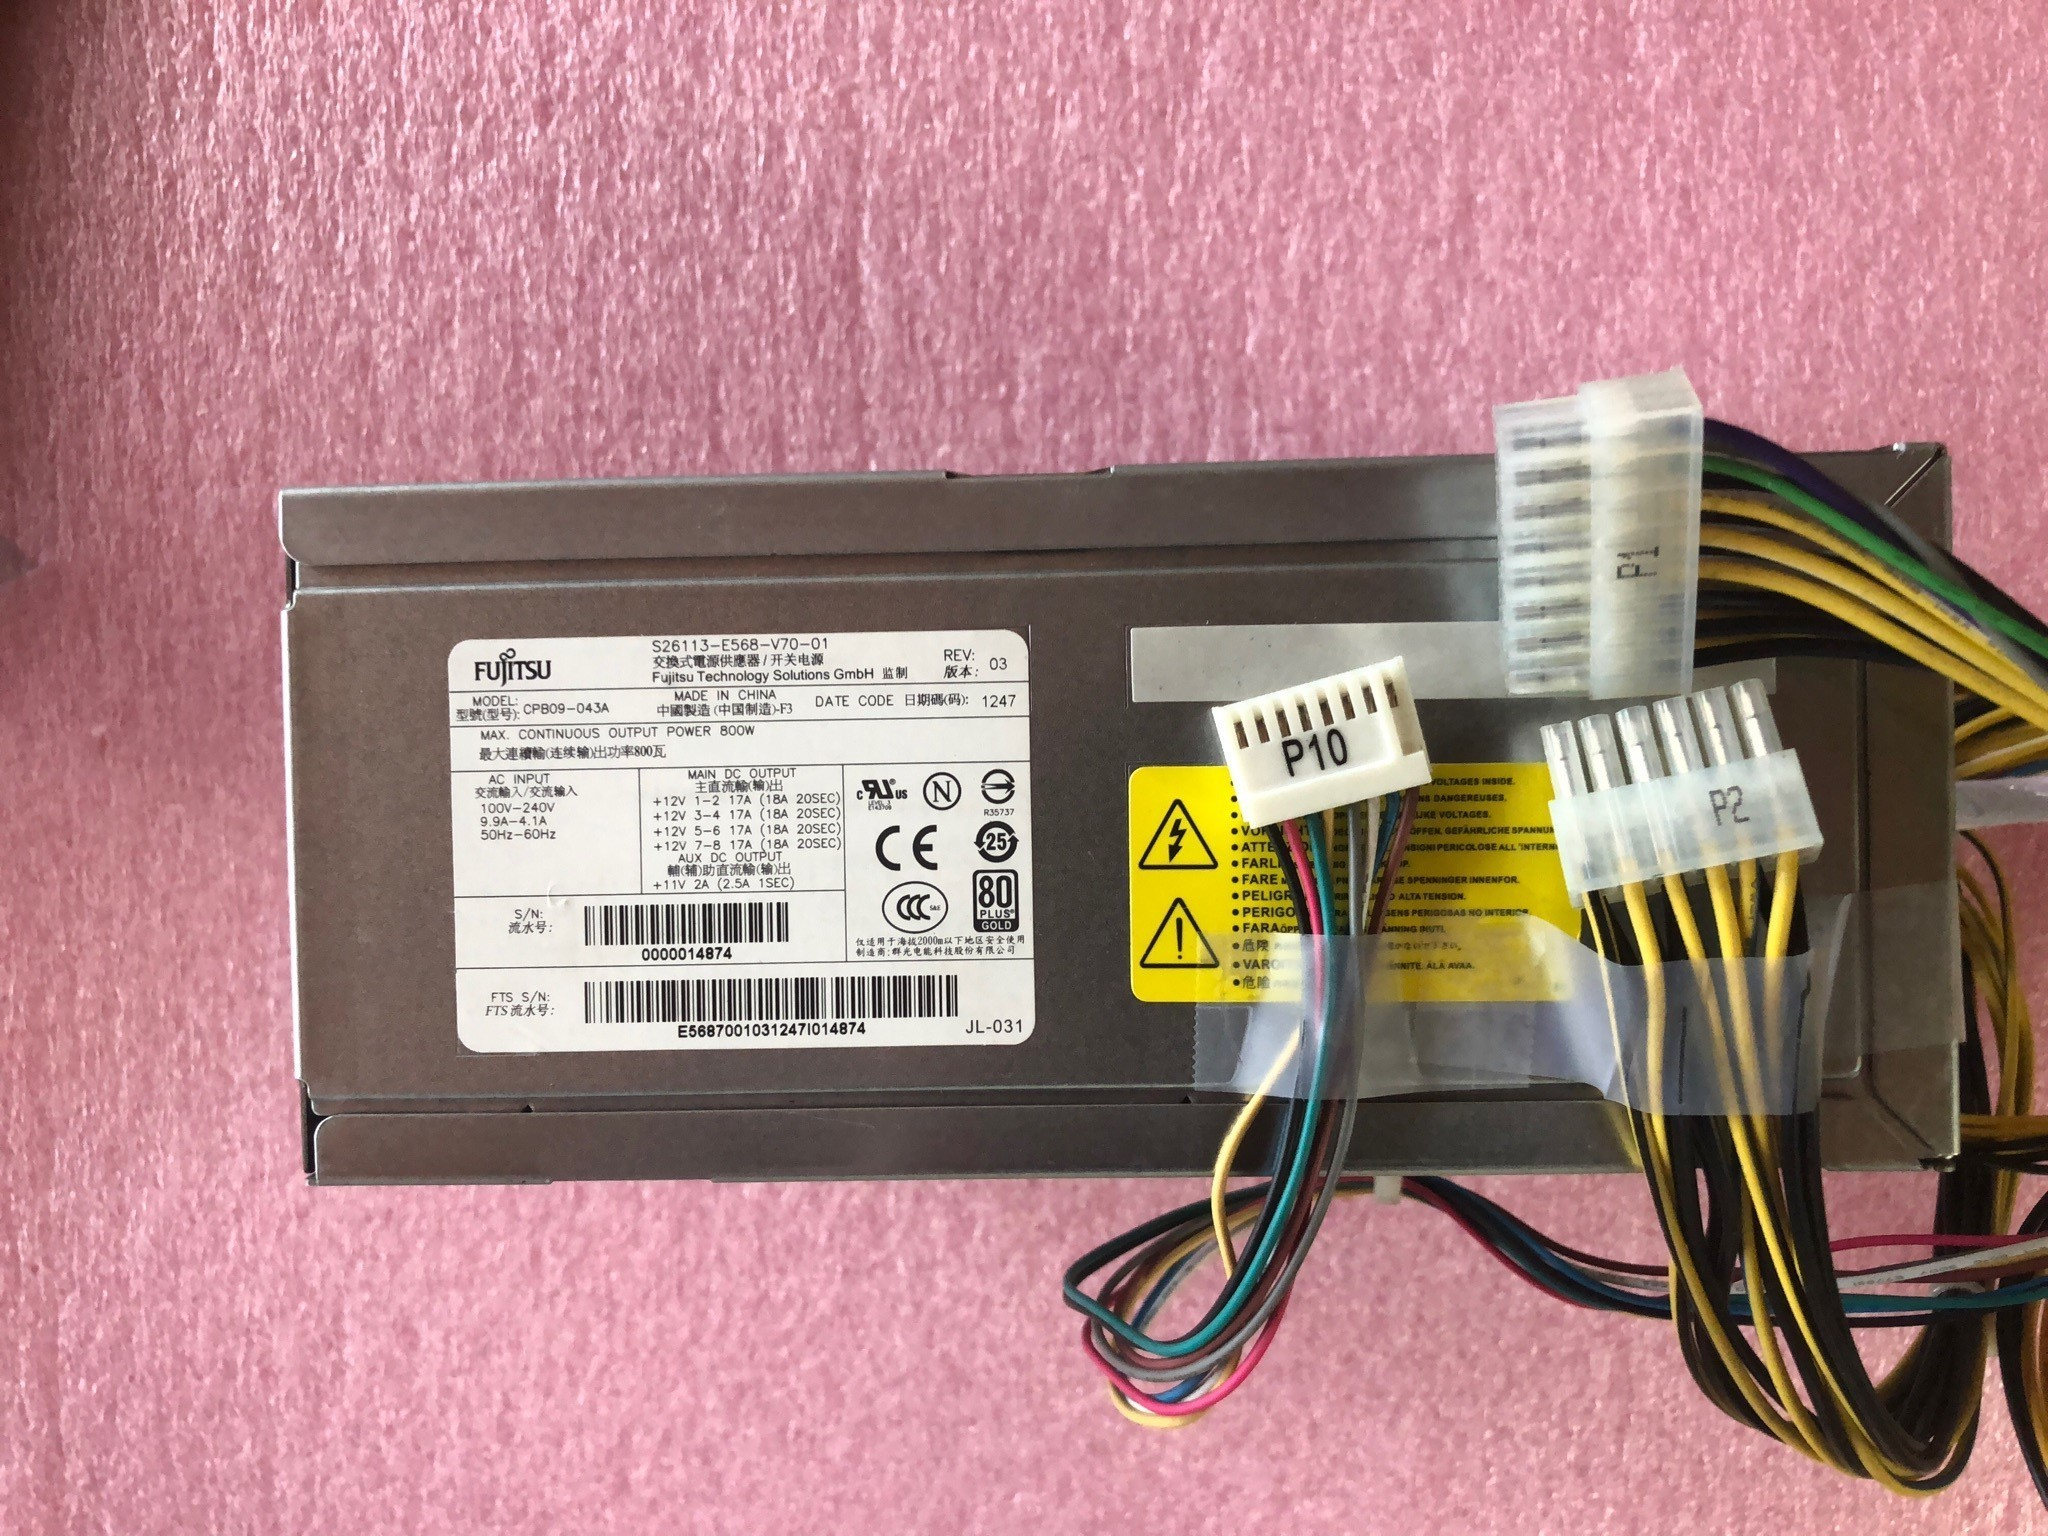 Fujitsu CPB09-043A 800 watt power supply